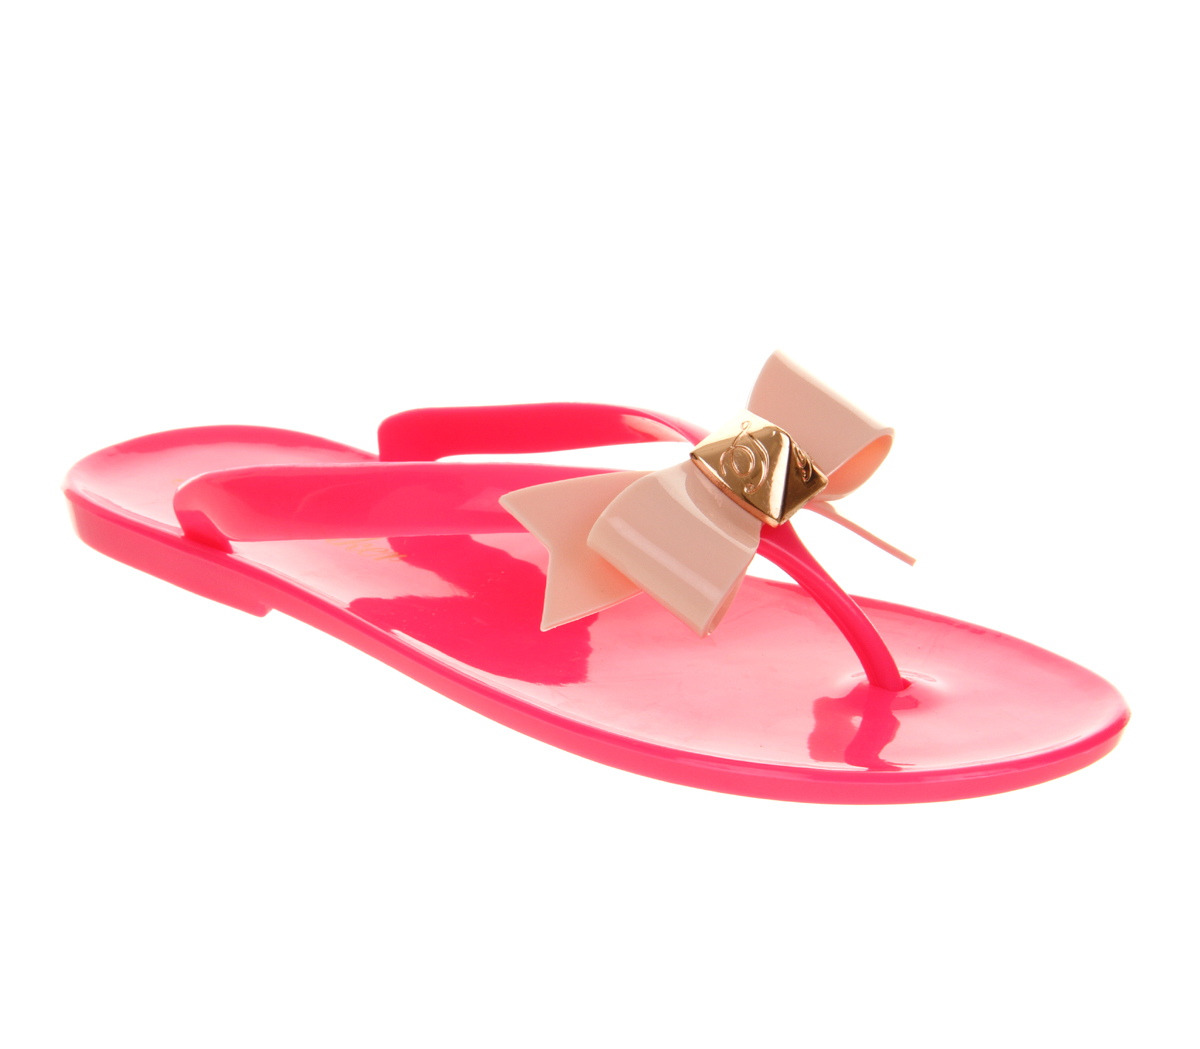 3f8a45e4f0e0 Lyst - Ted Baker Polee Flip Flop in Pink